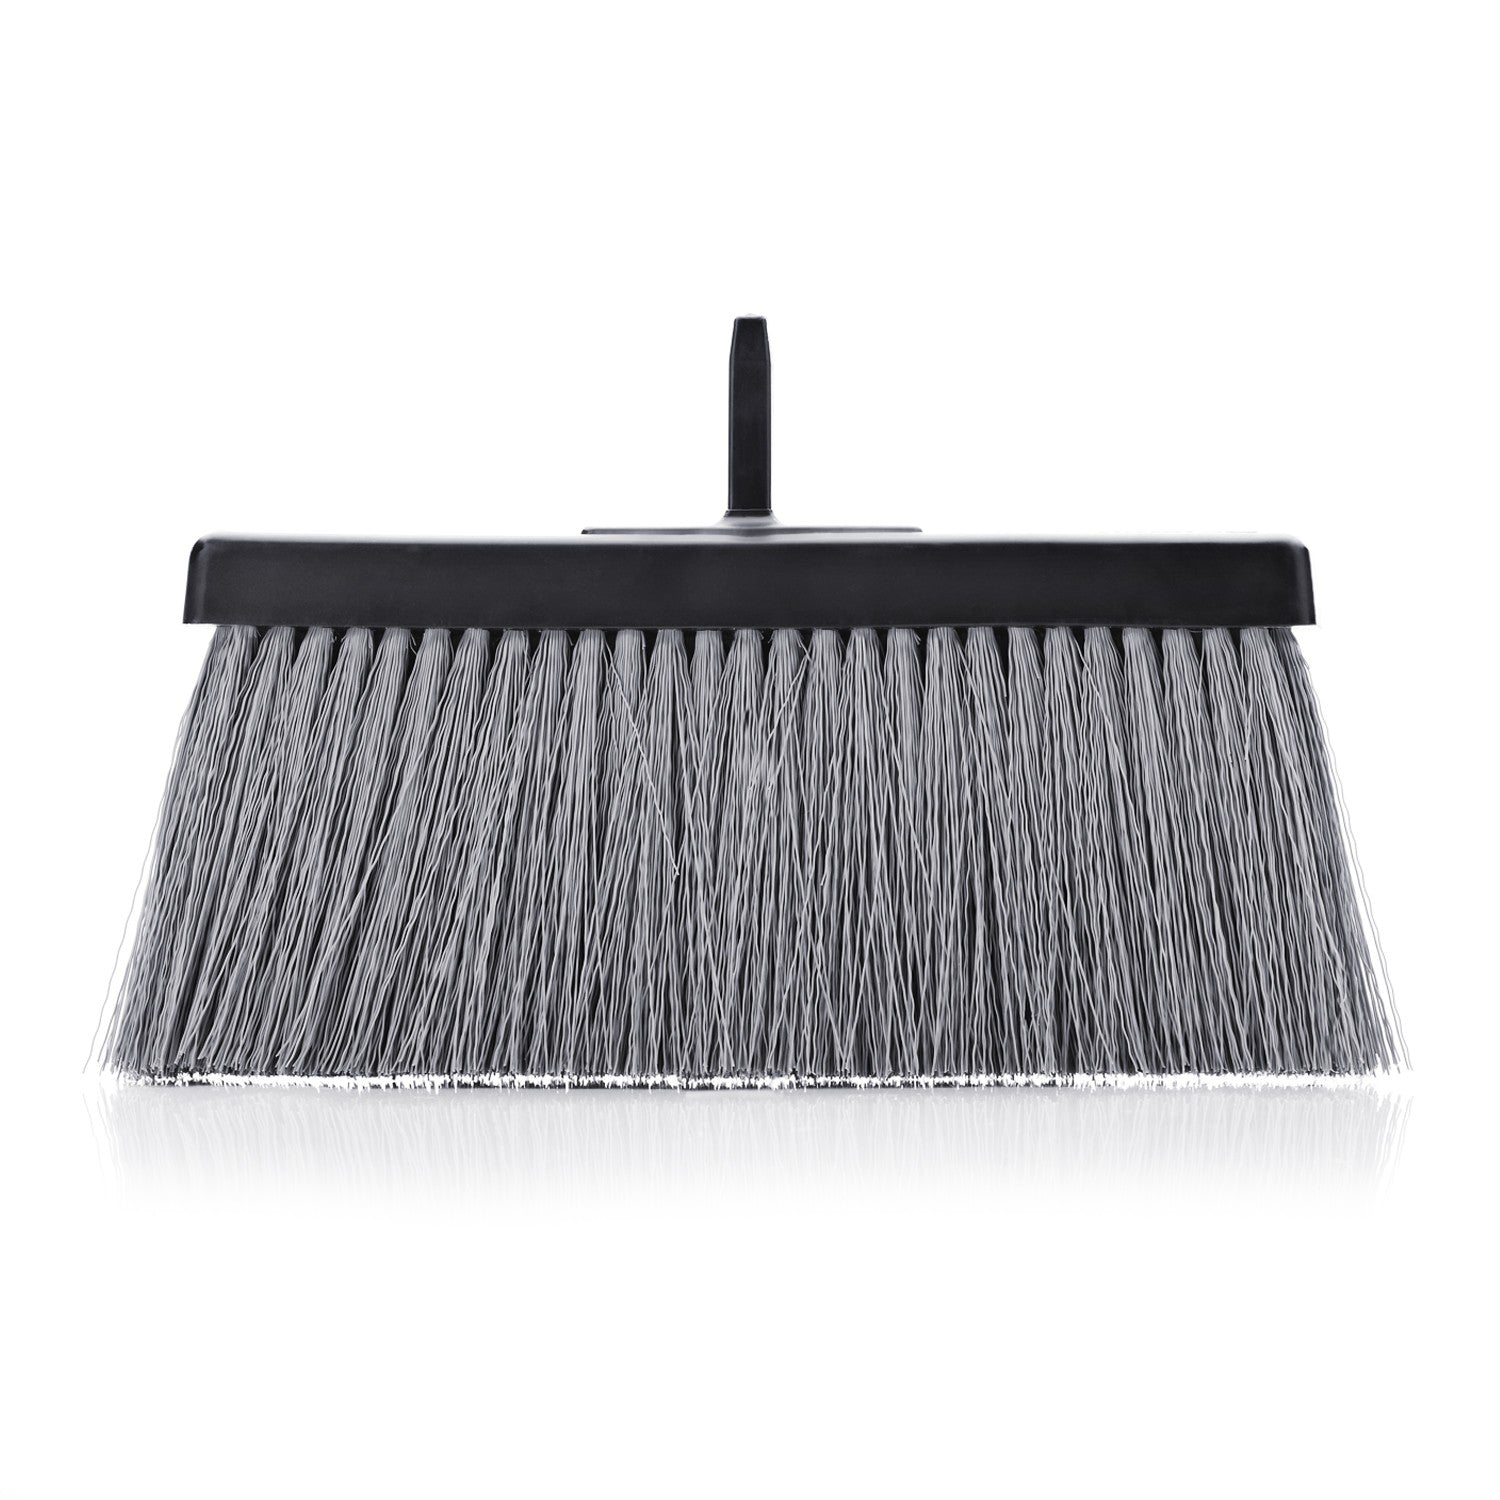 Stanely Black Slender Broom Head - Compact and Trim - For All Floors